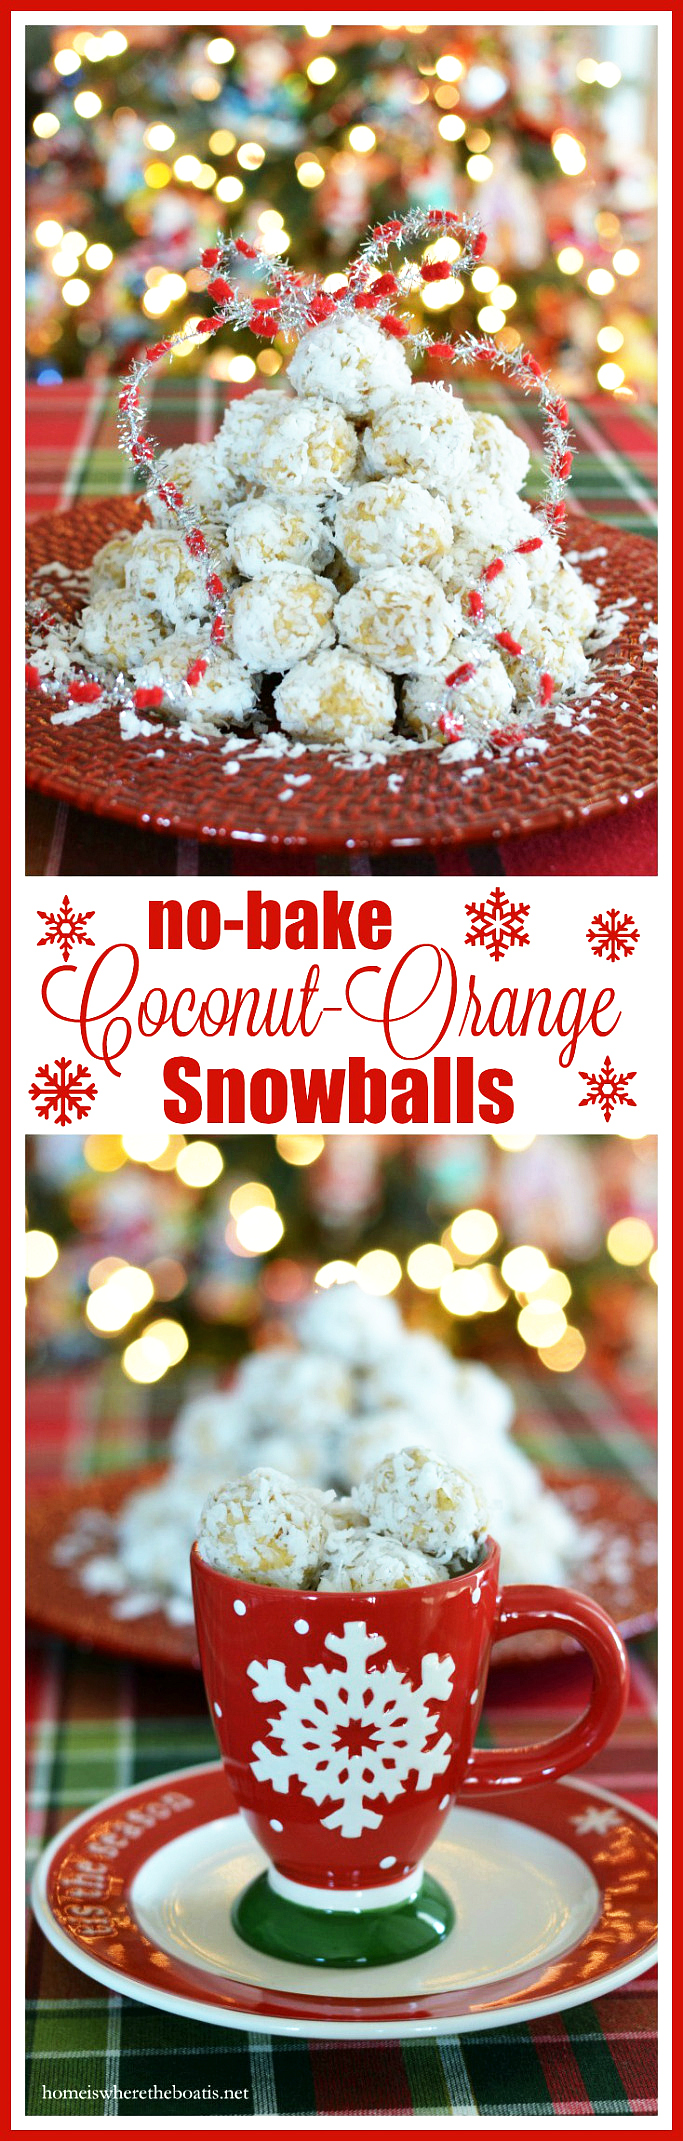 No-Bake Coconut Orange Snowballs | ©homeiswheretheboatis.net #cookies #nobake #recipes